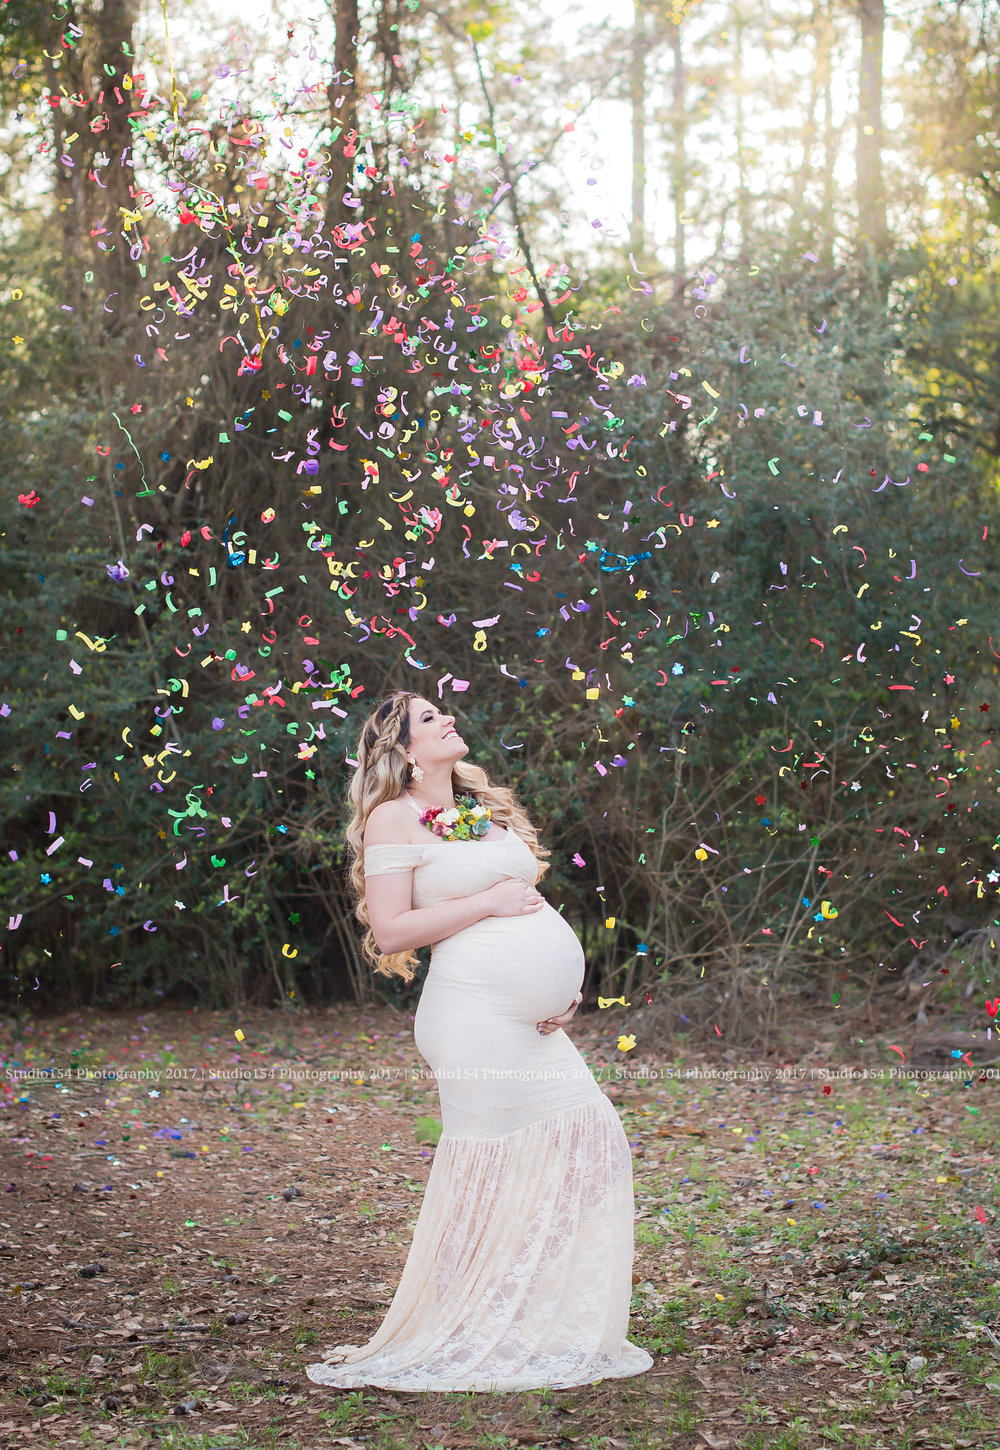 1March-750_7291RainbowMaternityShoot-2.jpg